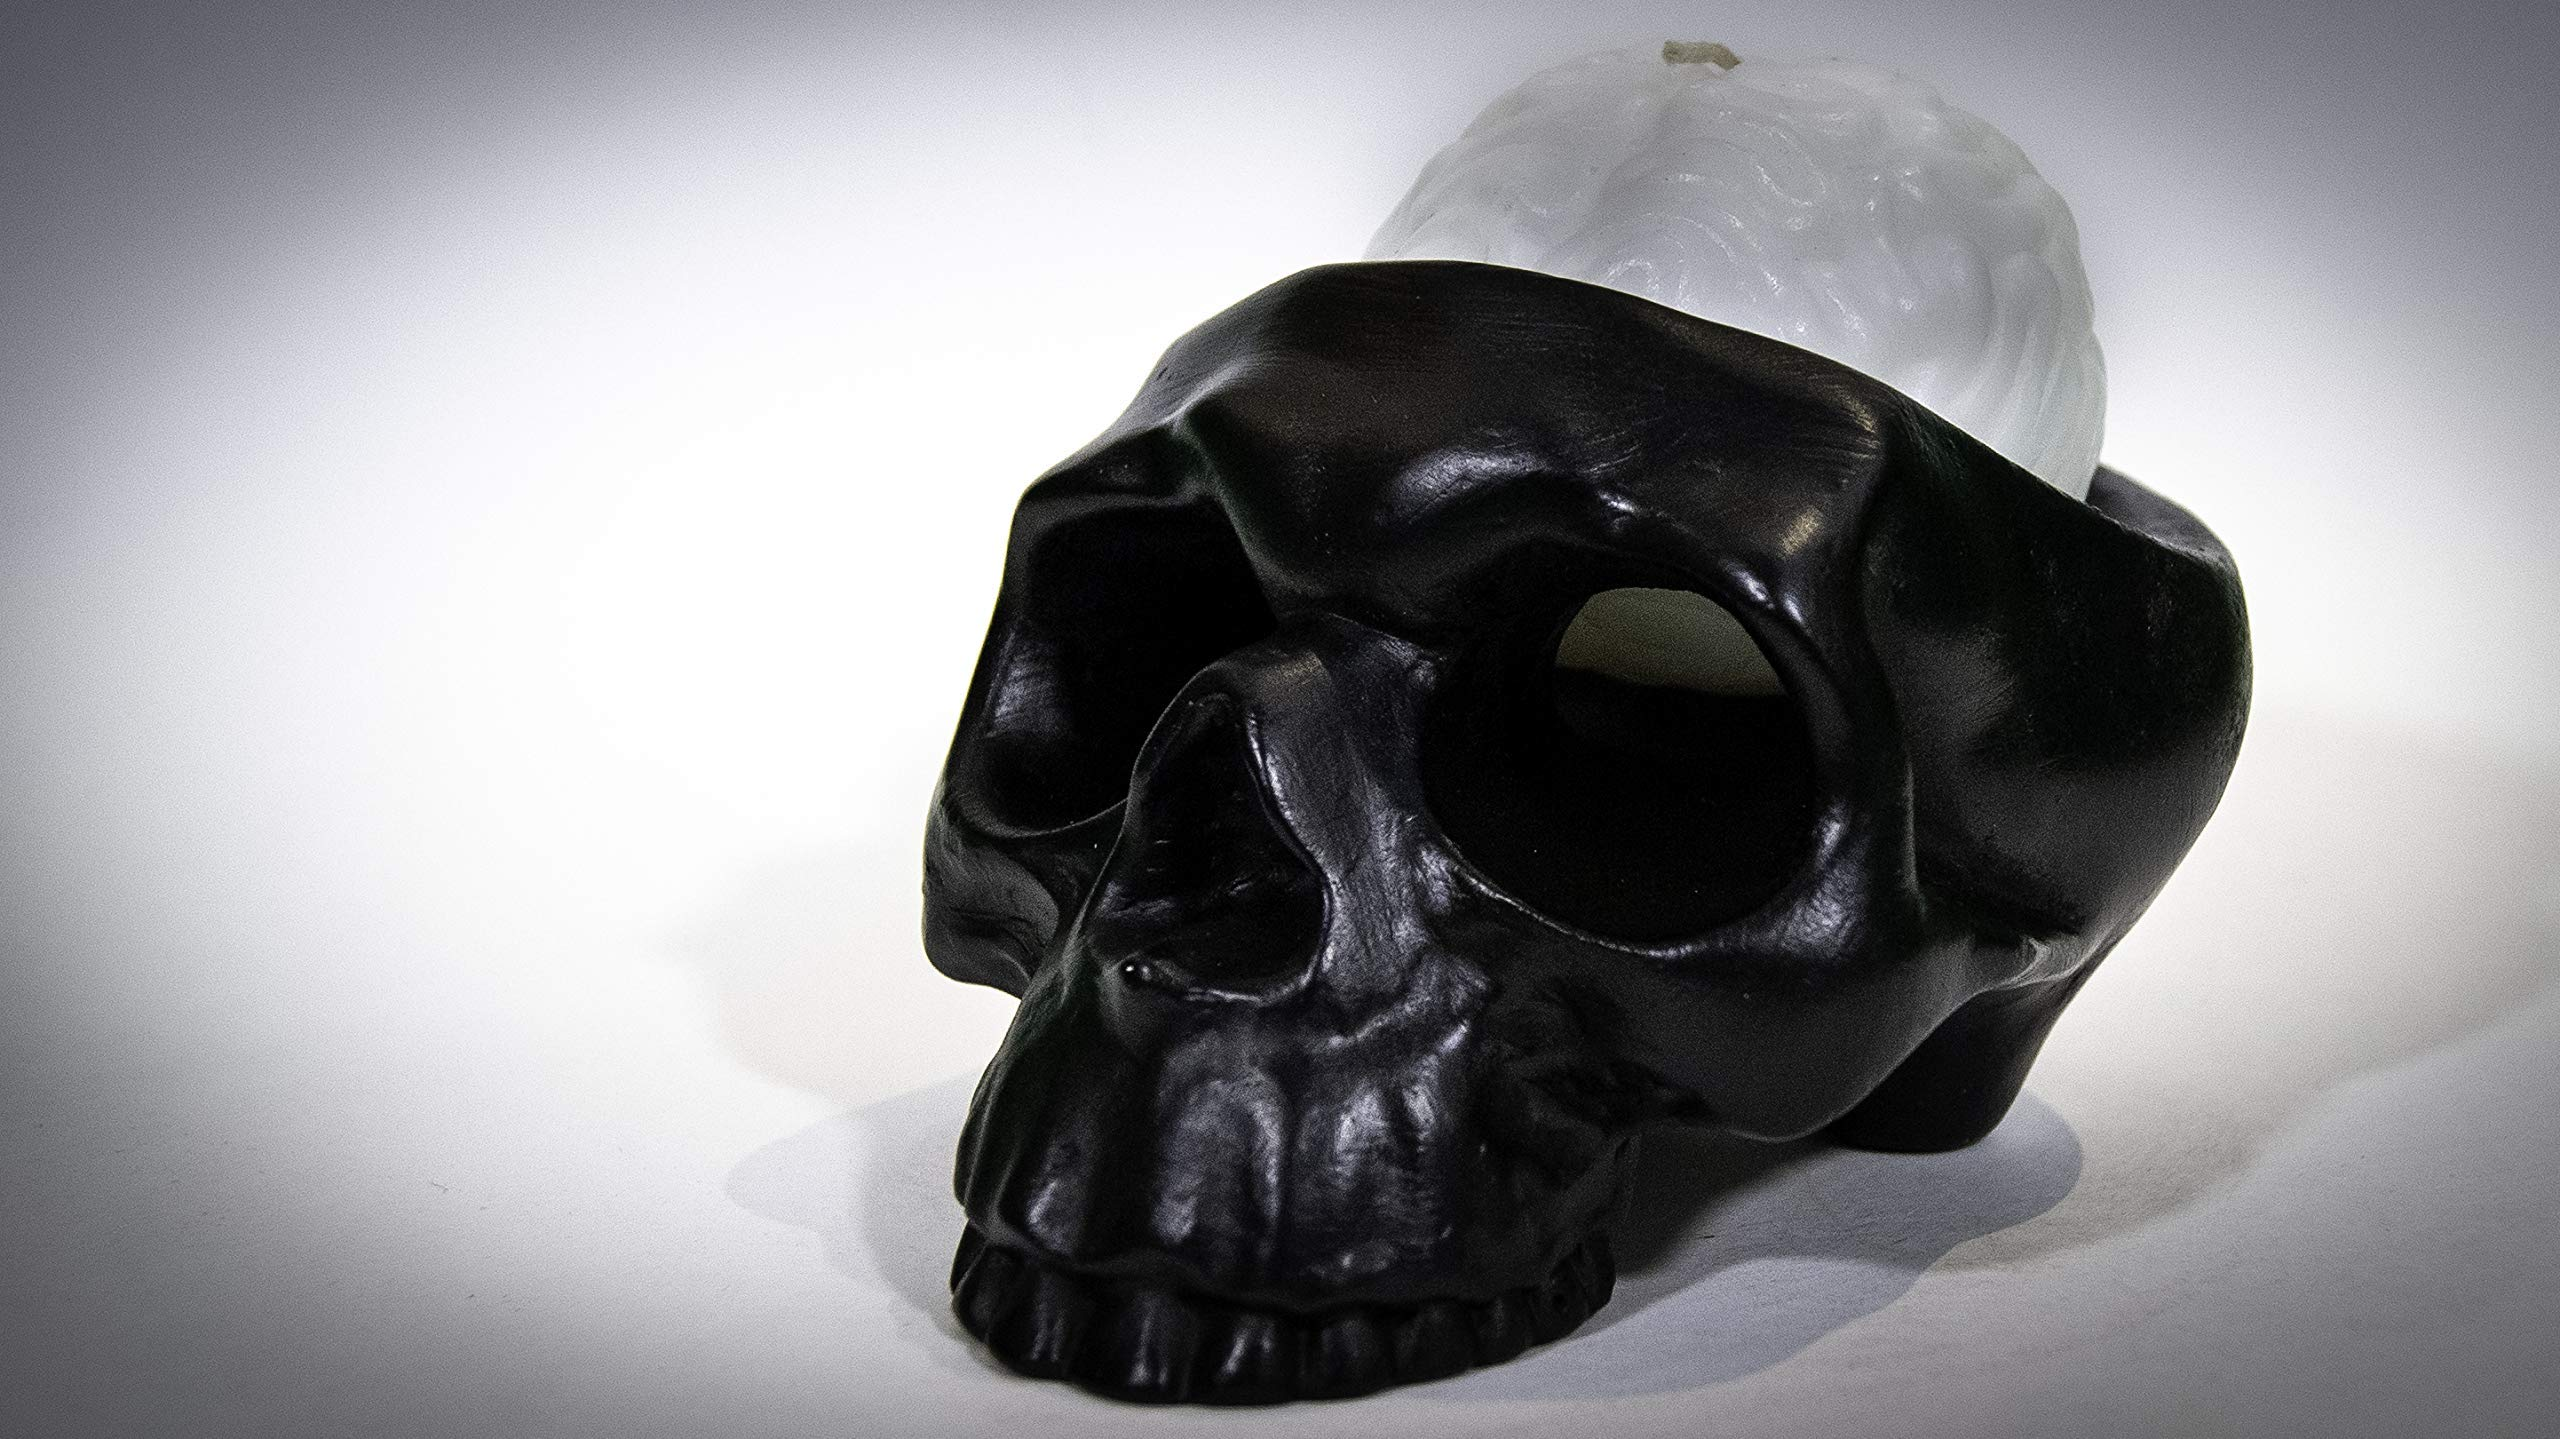 Handmade Novelty Crying Skull Candle Holder with a Brain Candle (Black/White)